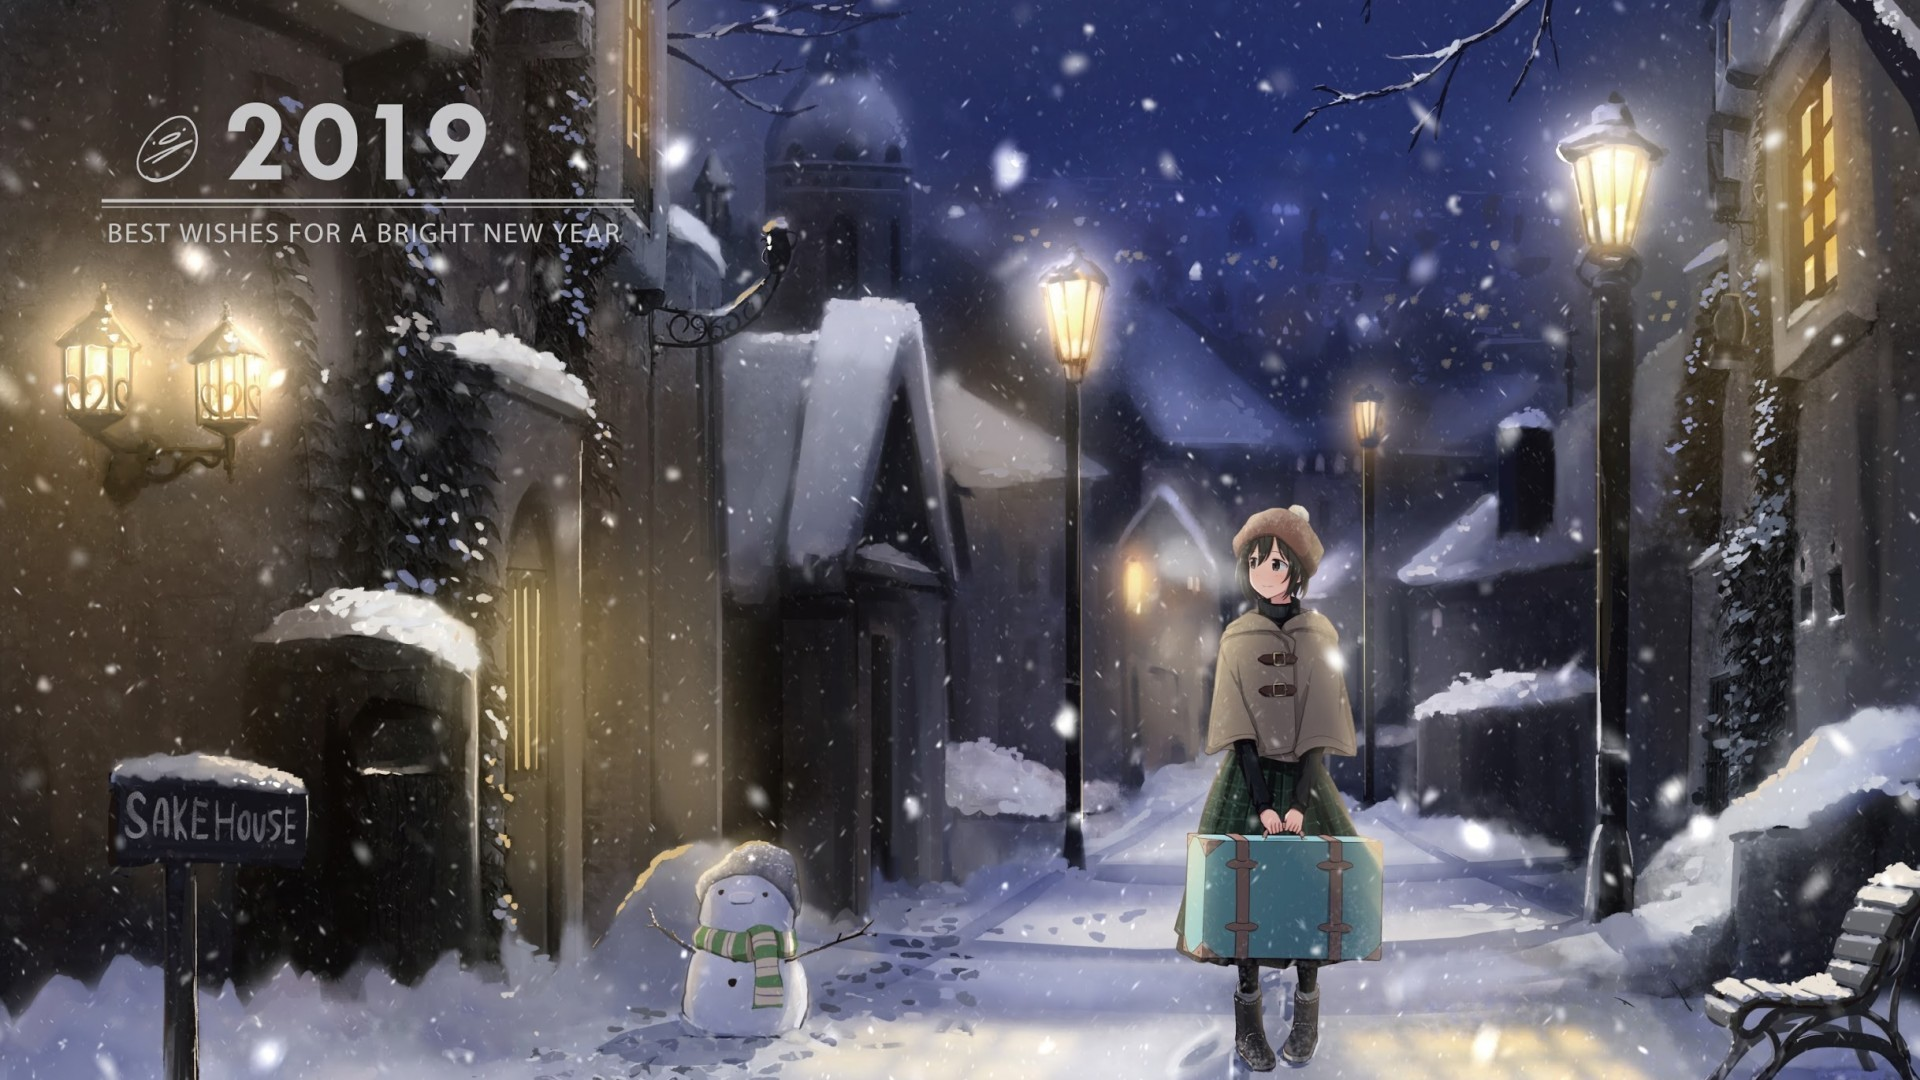 Download 1920x1080 Snow Anime Girl Winter Welcome 2019 Snowman 1920x1080